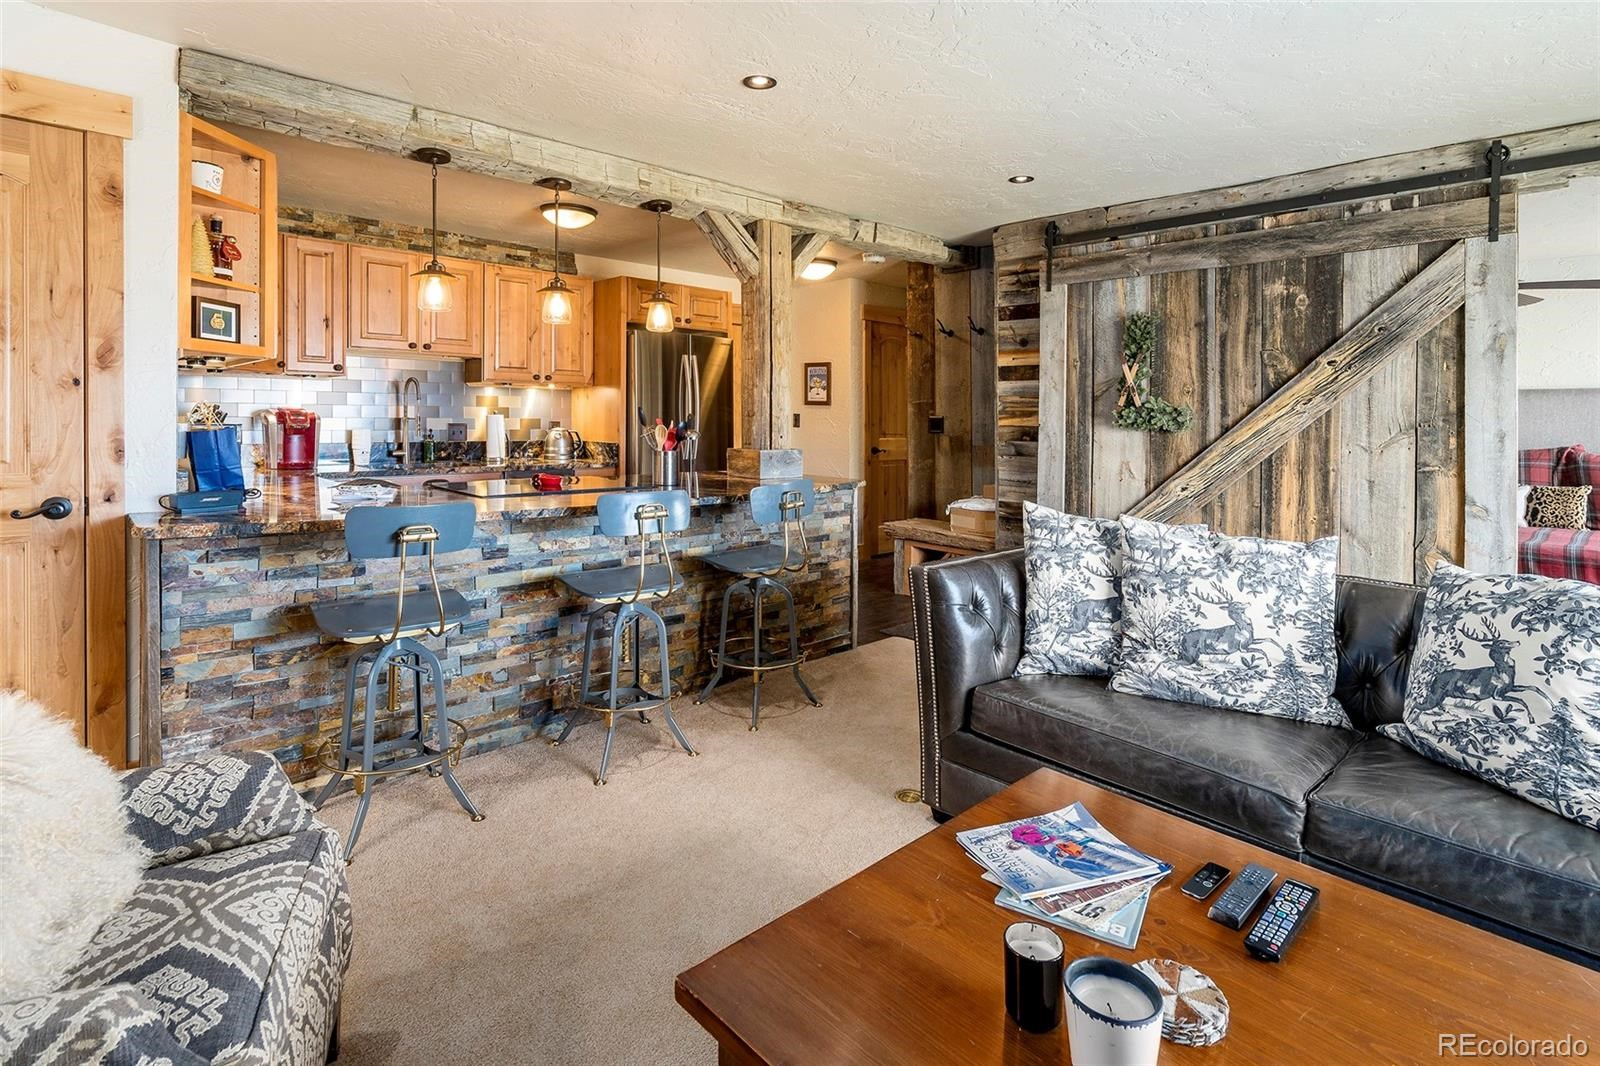 MLS# 9768021 - 1 - 2275 Storm Meadows Drive #45, Steamboat Springs, CO 80487